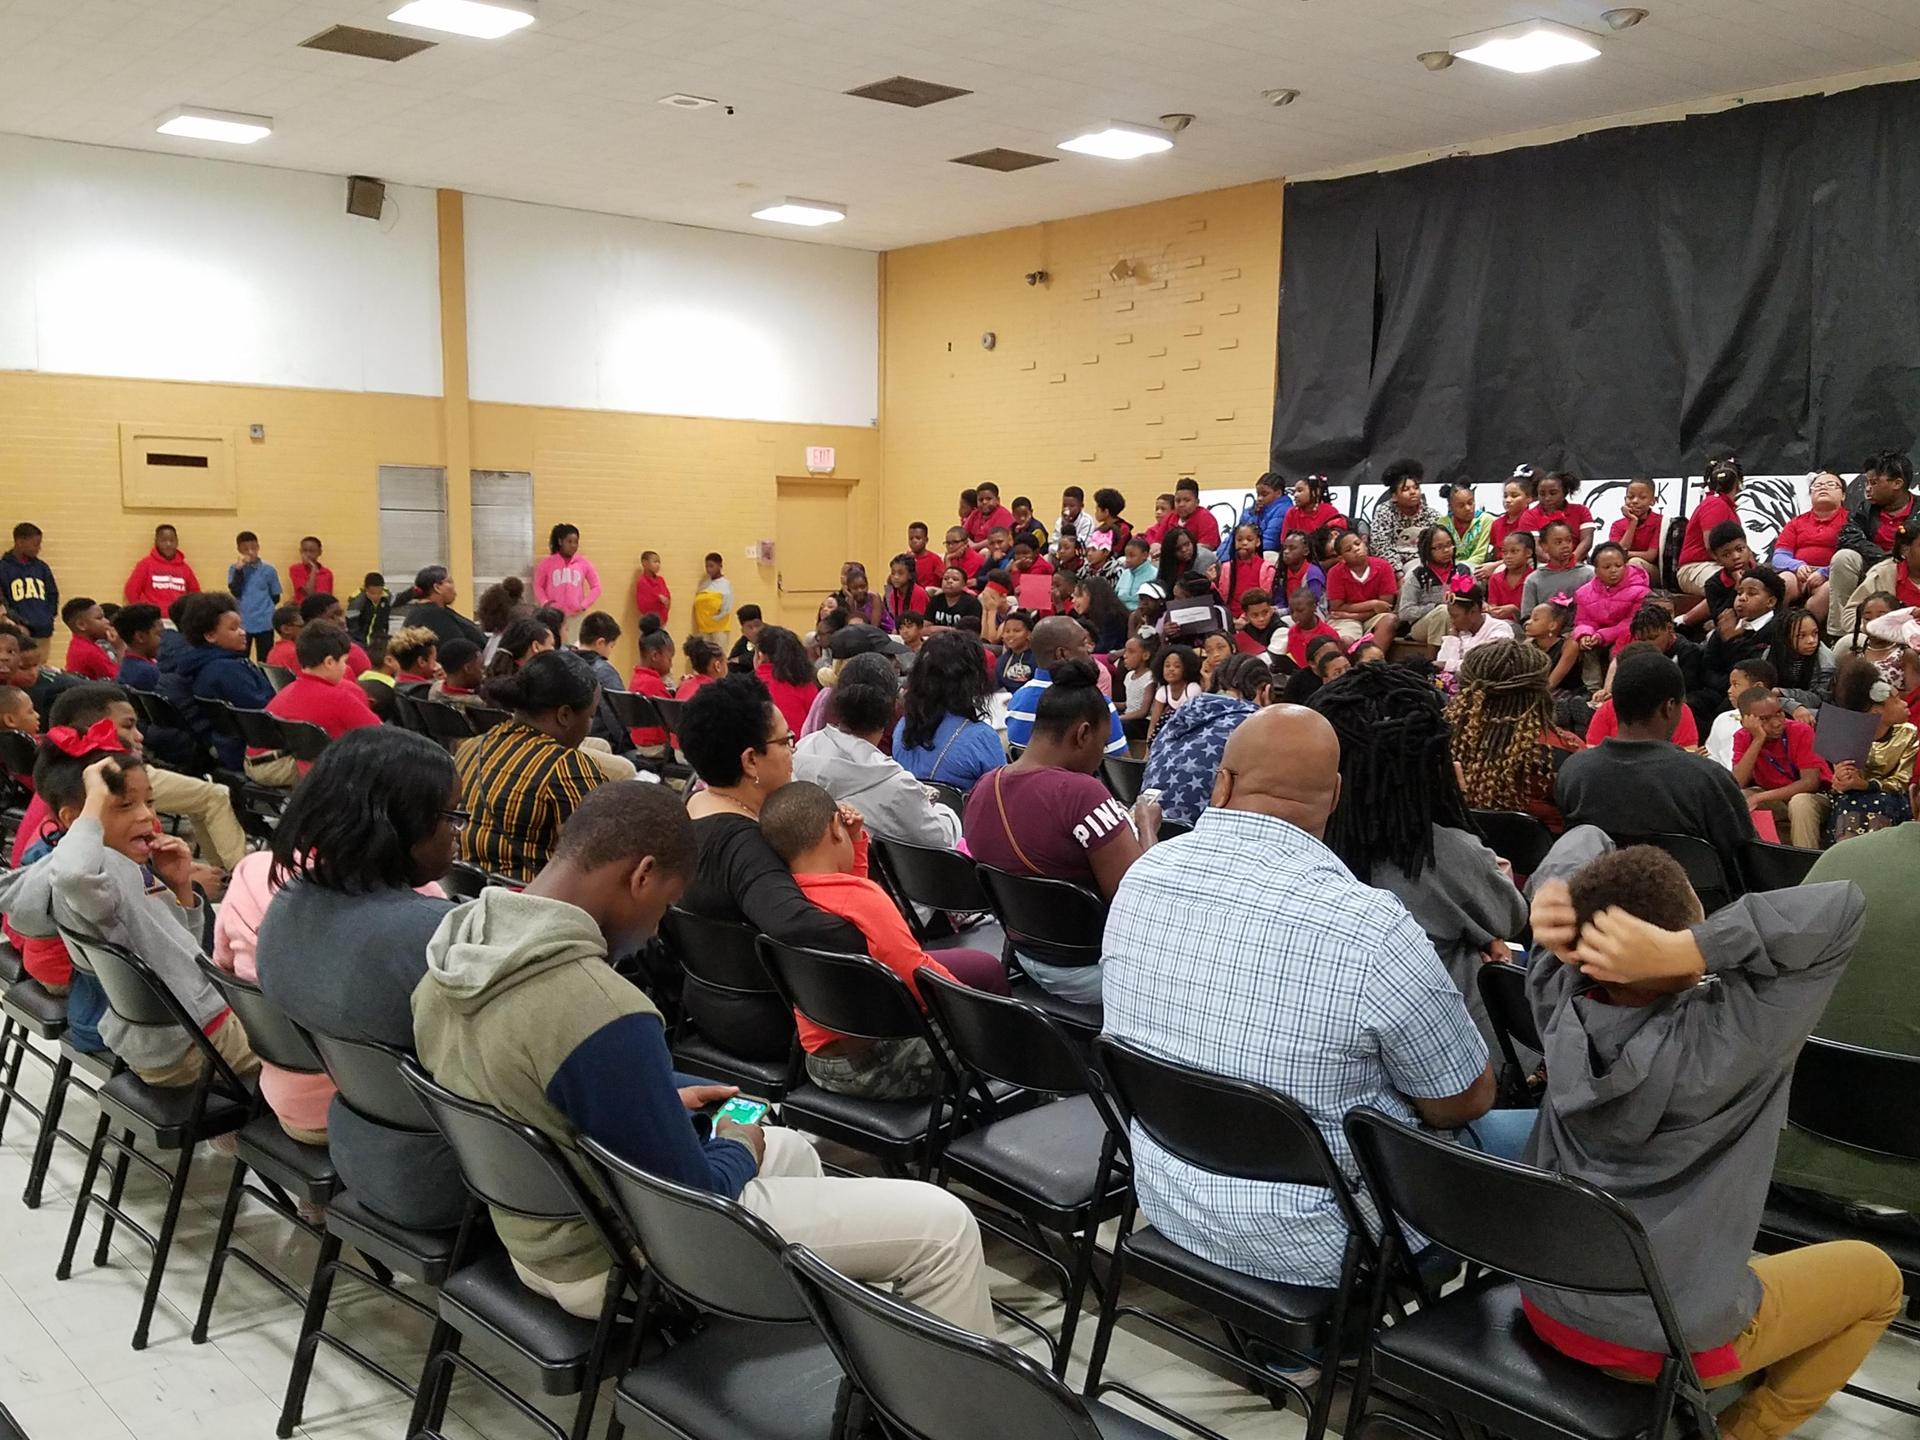 a photo of Mrs. Candace Bailey giving closing remarks at the end of the Bakerfield/Baker Heights 2019 Black History Program